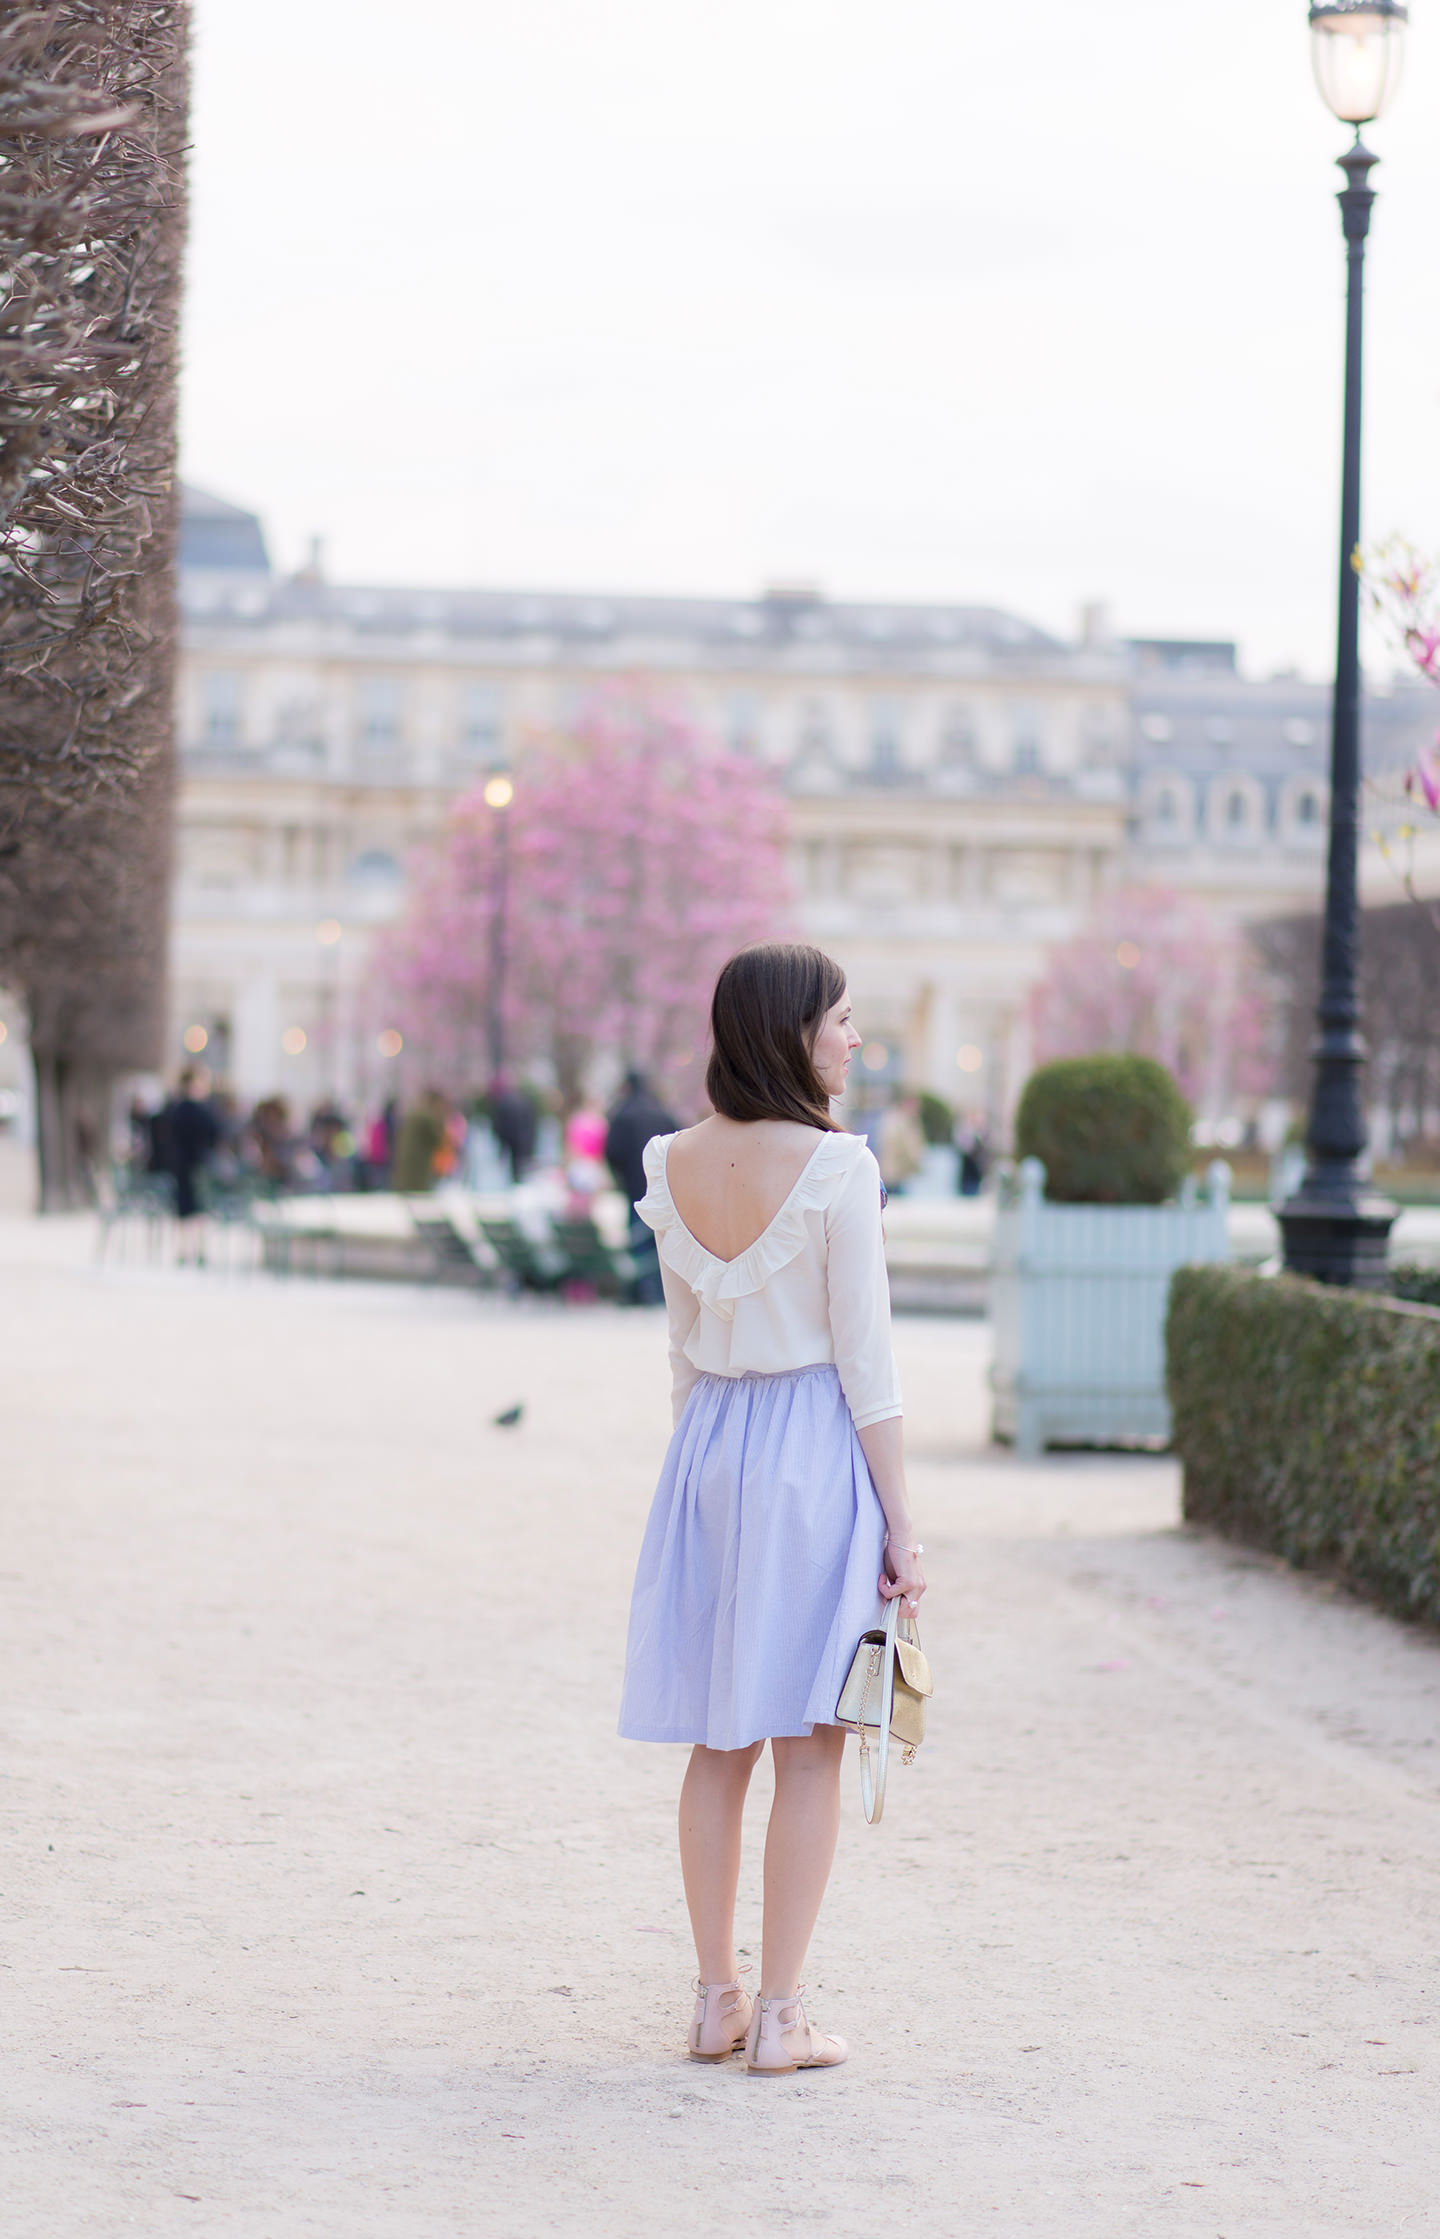 Blog-Mode-And-The-City-Looks-Le-Printemps-Au-Palais-Royal-4